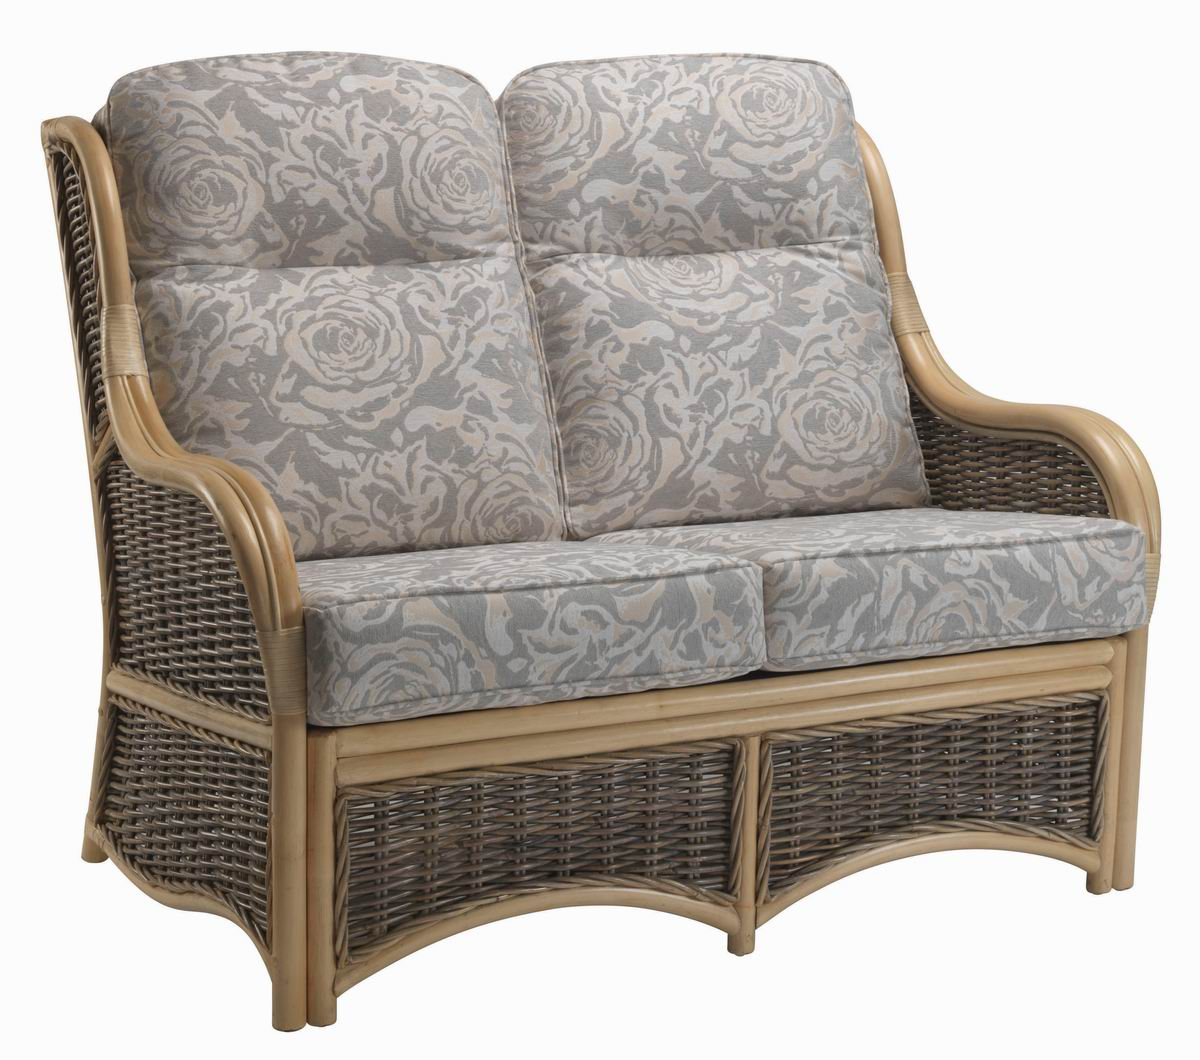 https://www.firstfurniture.co.uk/pub/media/catalog/product/c/a/caranth.jpg